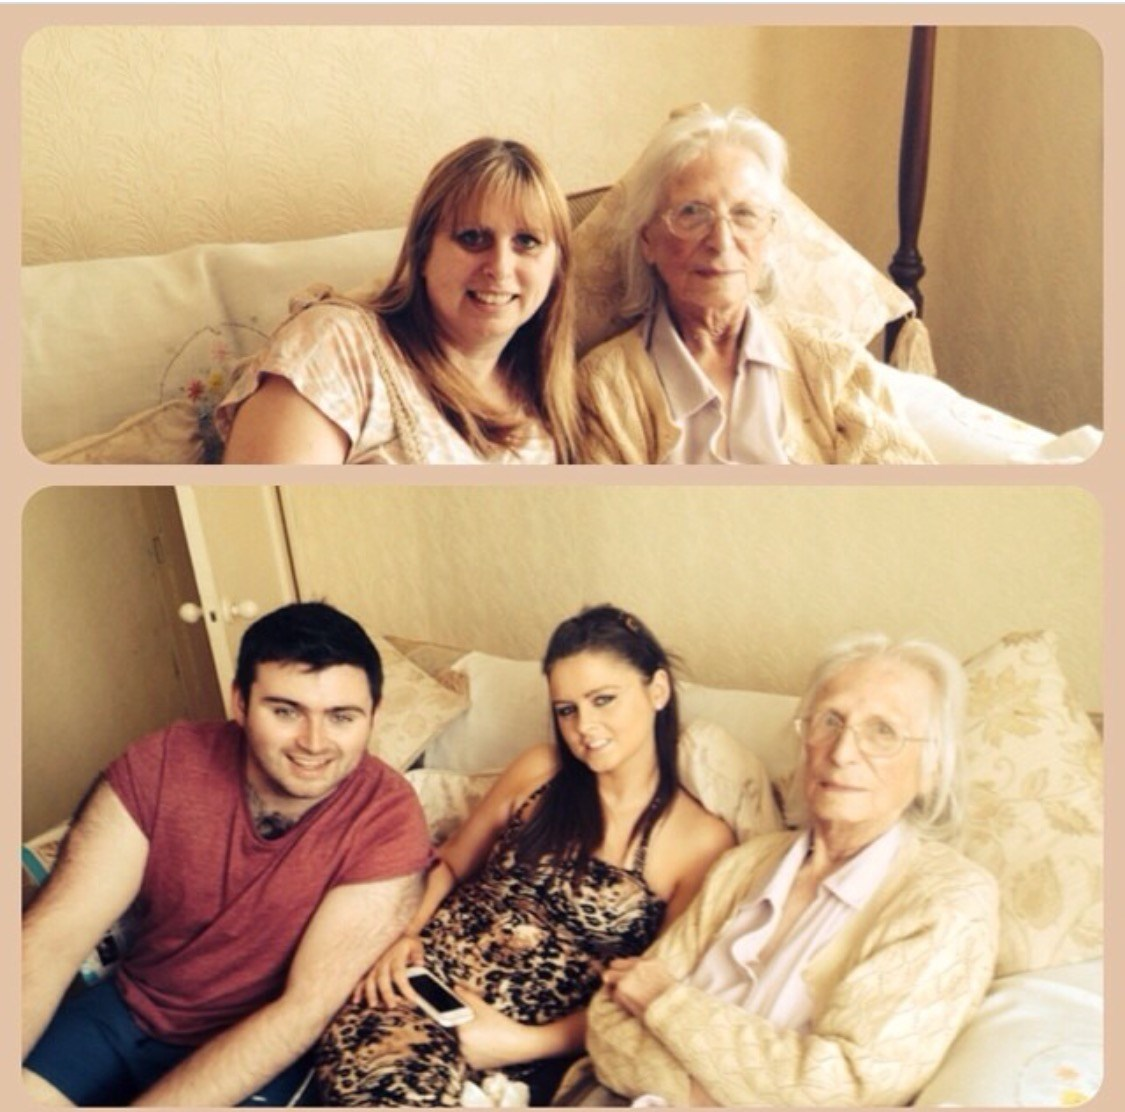 Me with my Nan & my kids Katie & Jack with their great grandmother Amy xx